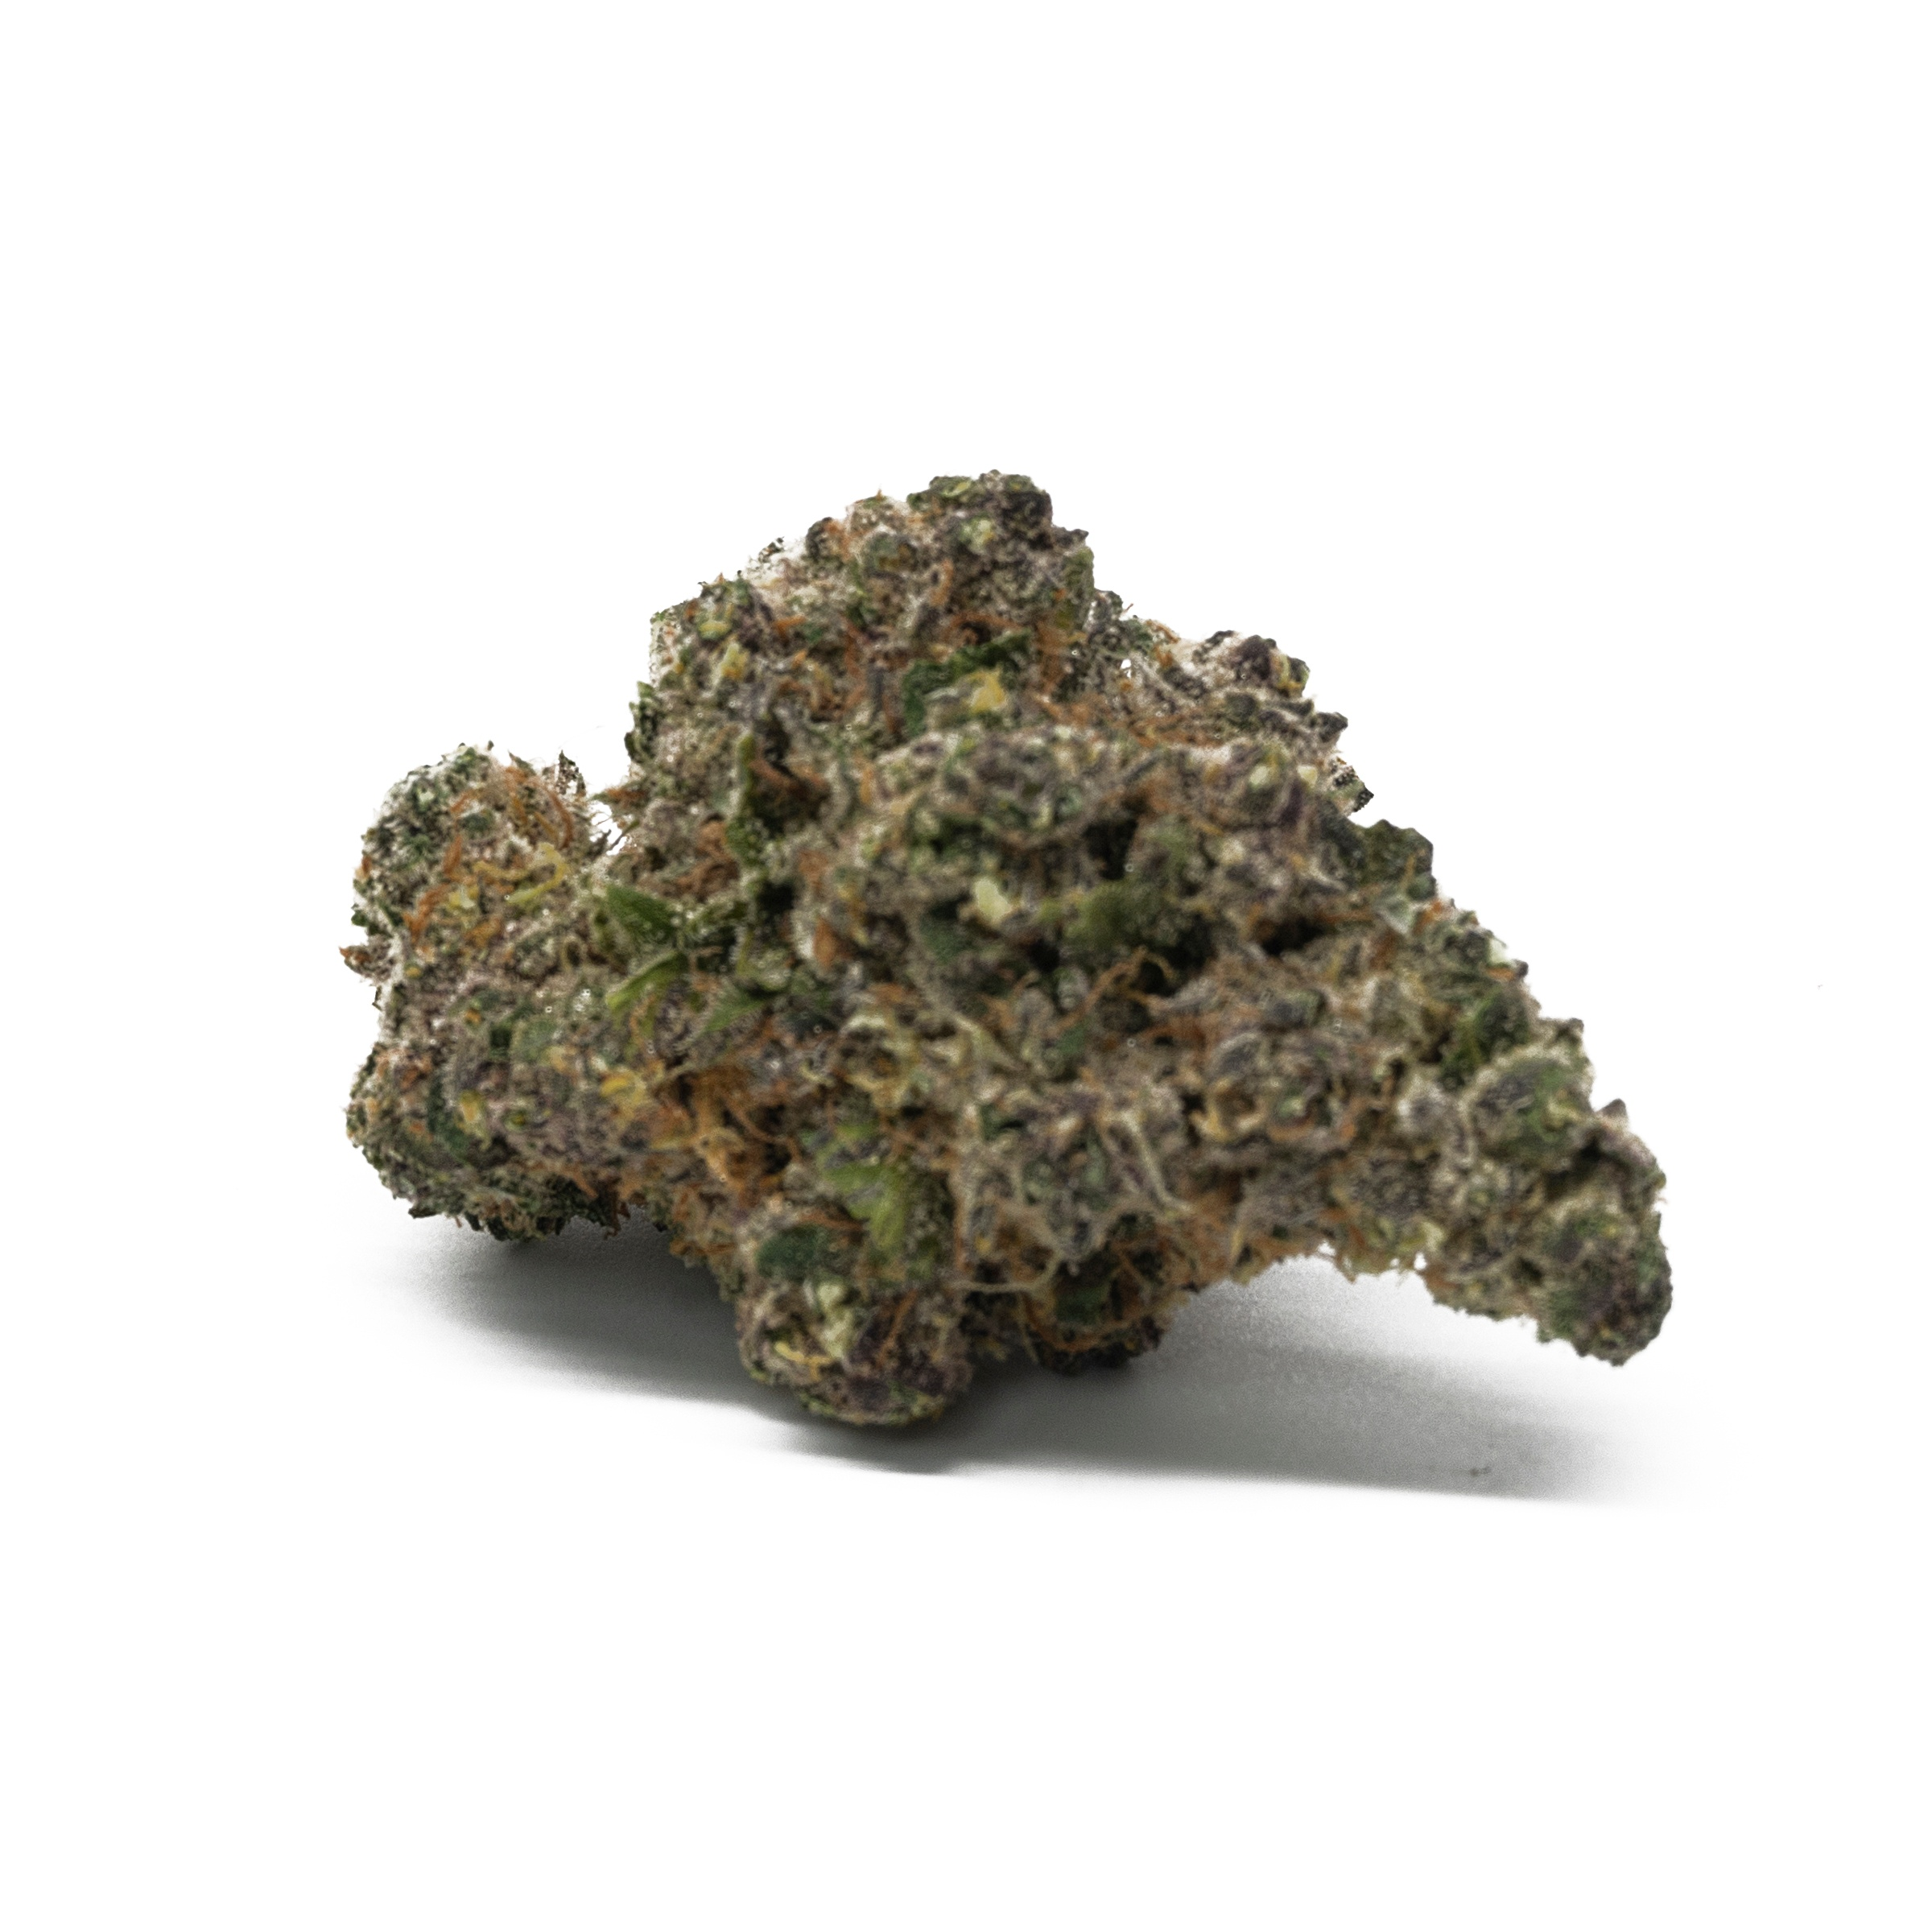 King's Breath - Jarred 1/8th| cannabisstores